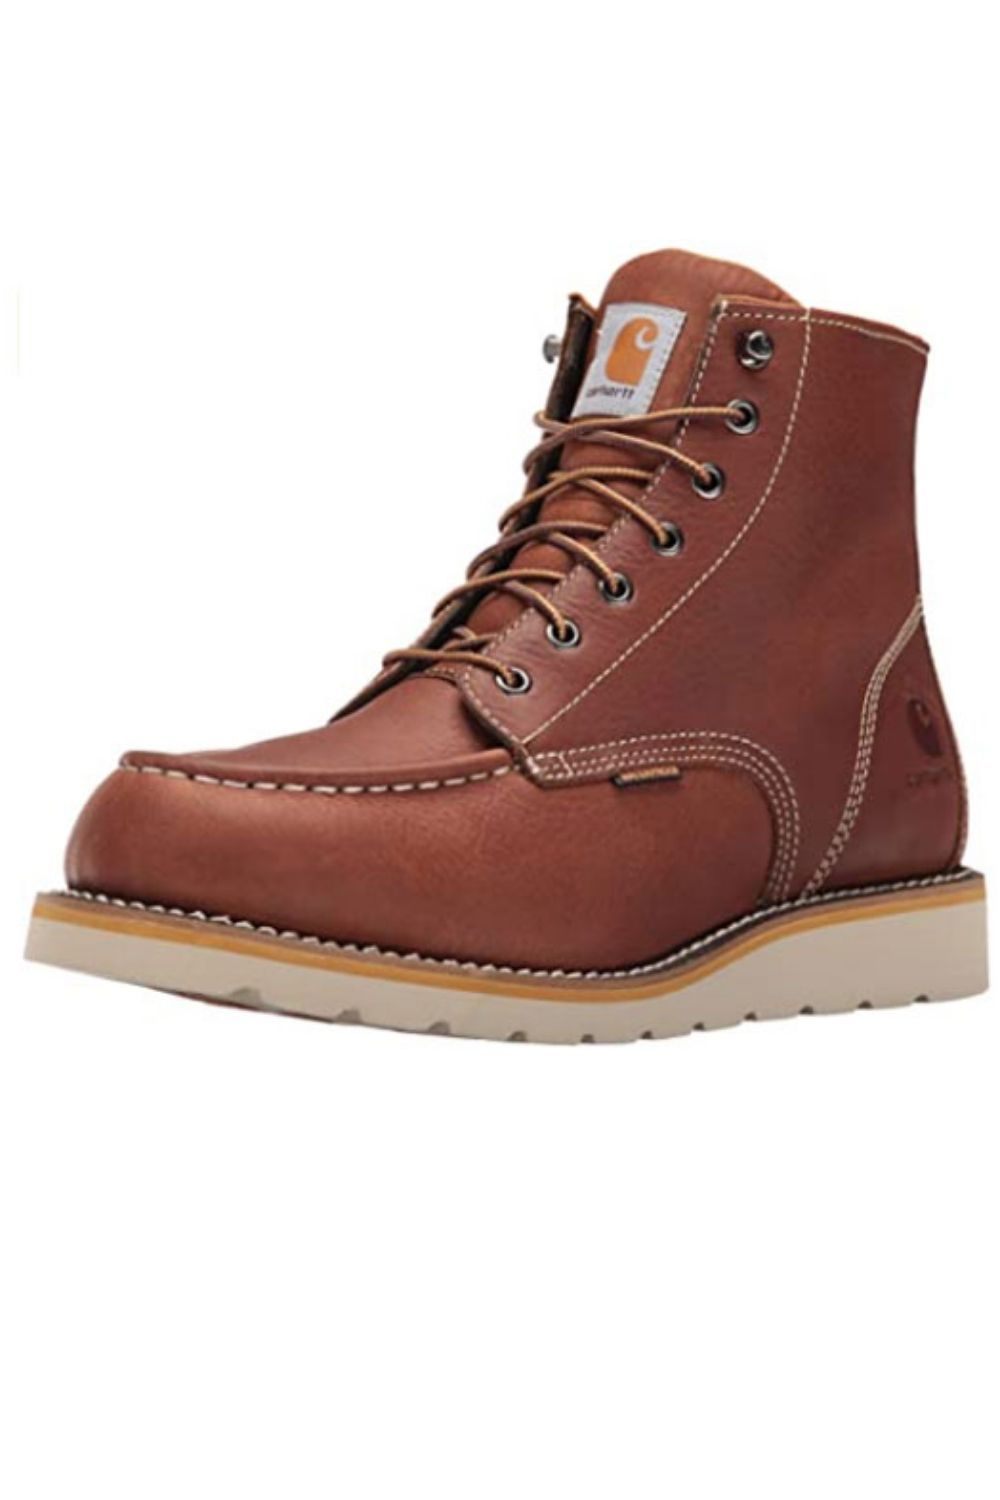 Best Non-Slip Boots Near Me 2020 in